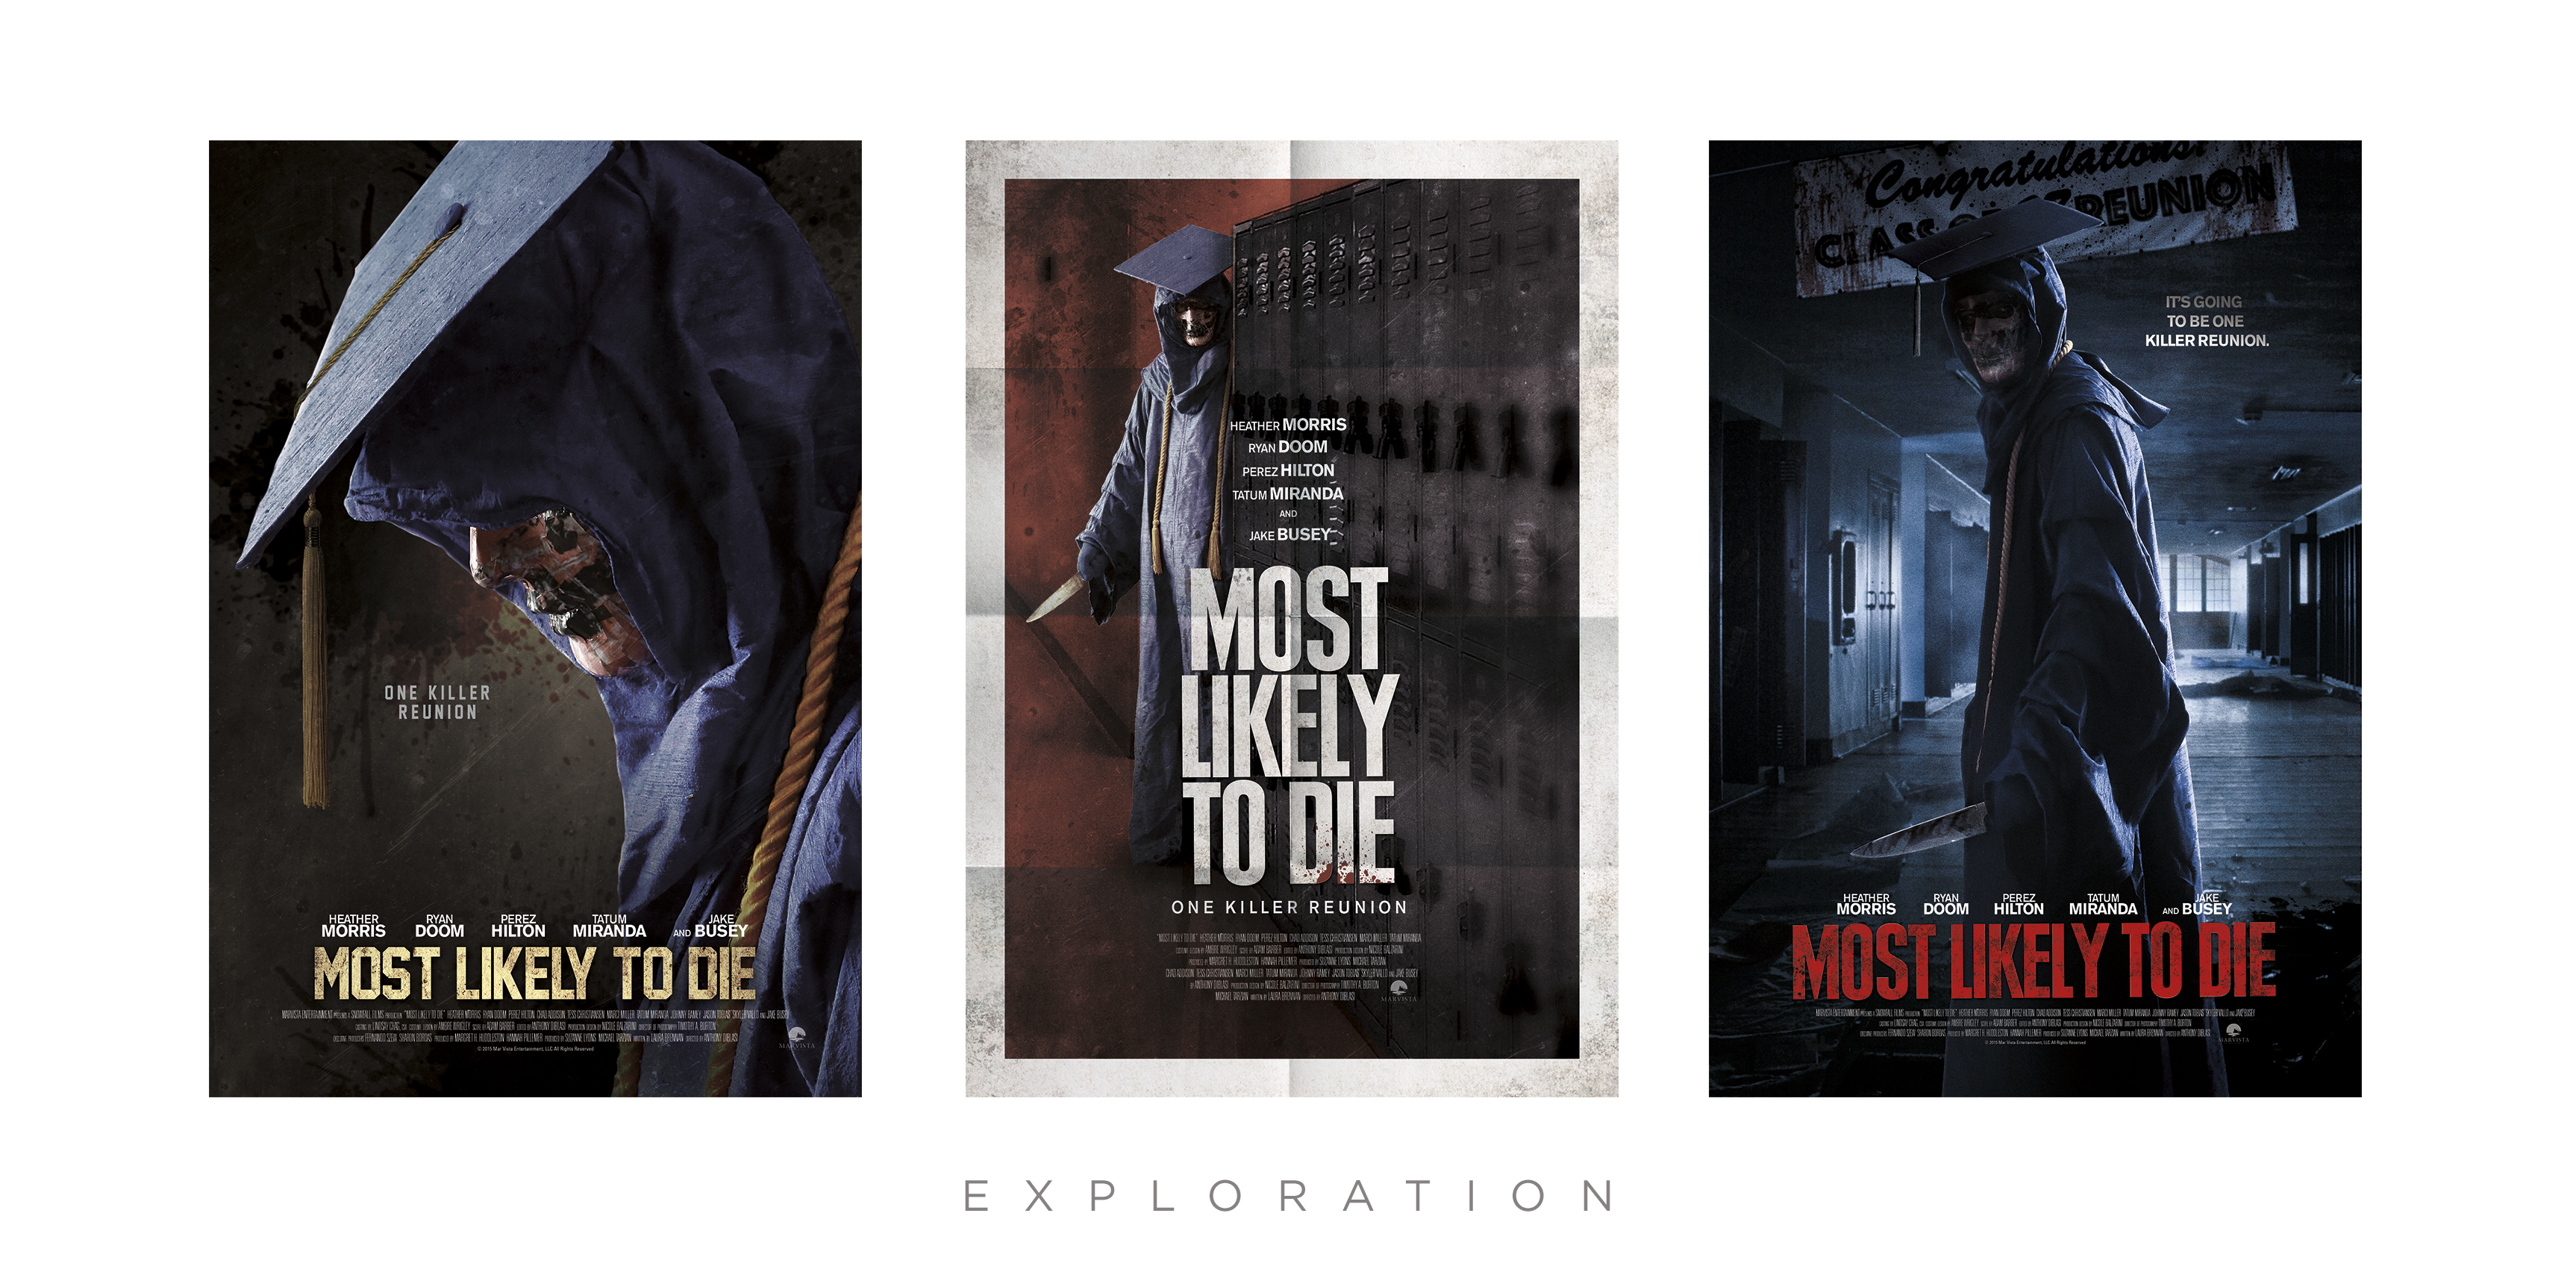 mld_most_likely_to_die_exploration